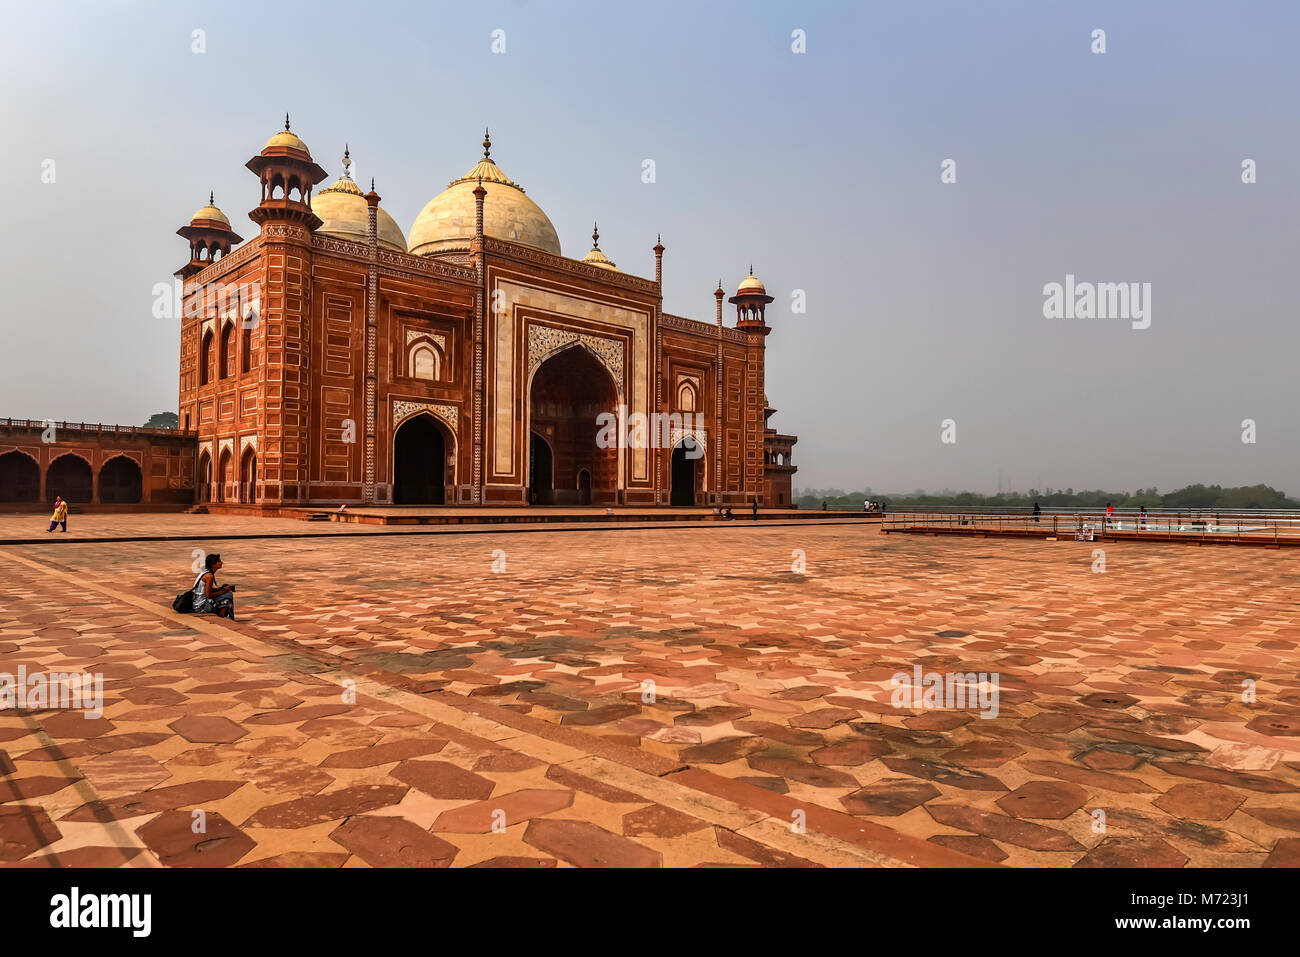 AGRA, INDIA - NOVEMBER 8, 2017: View of mosque in Taj-Mahal - Stock Image